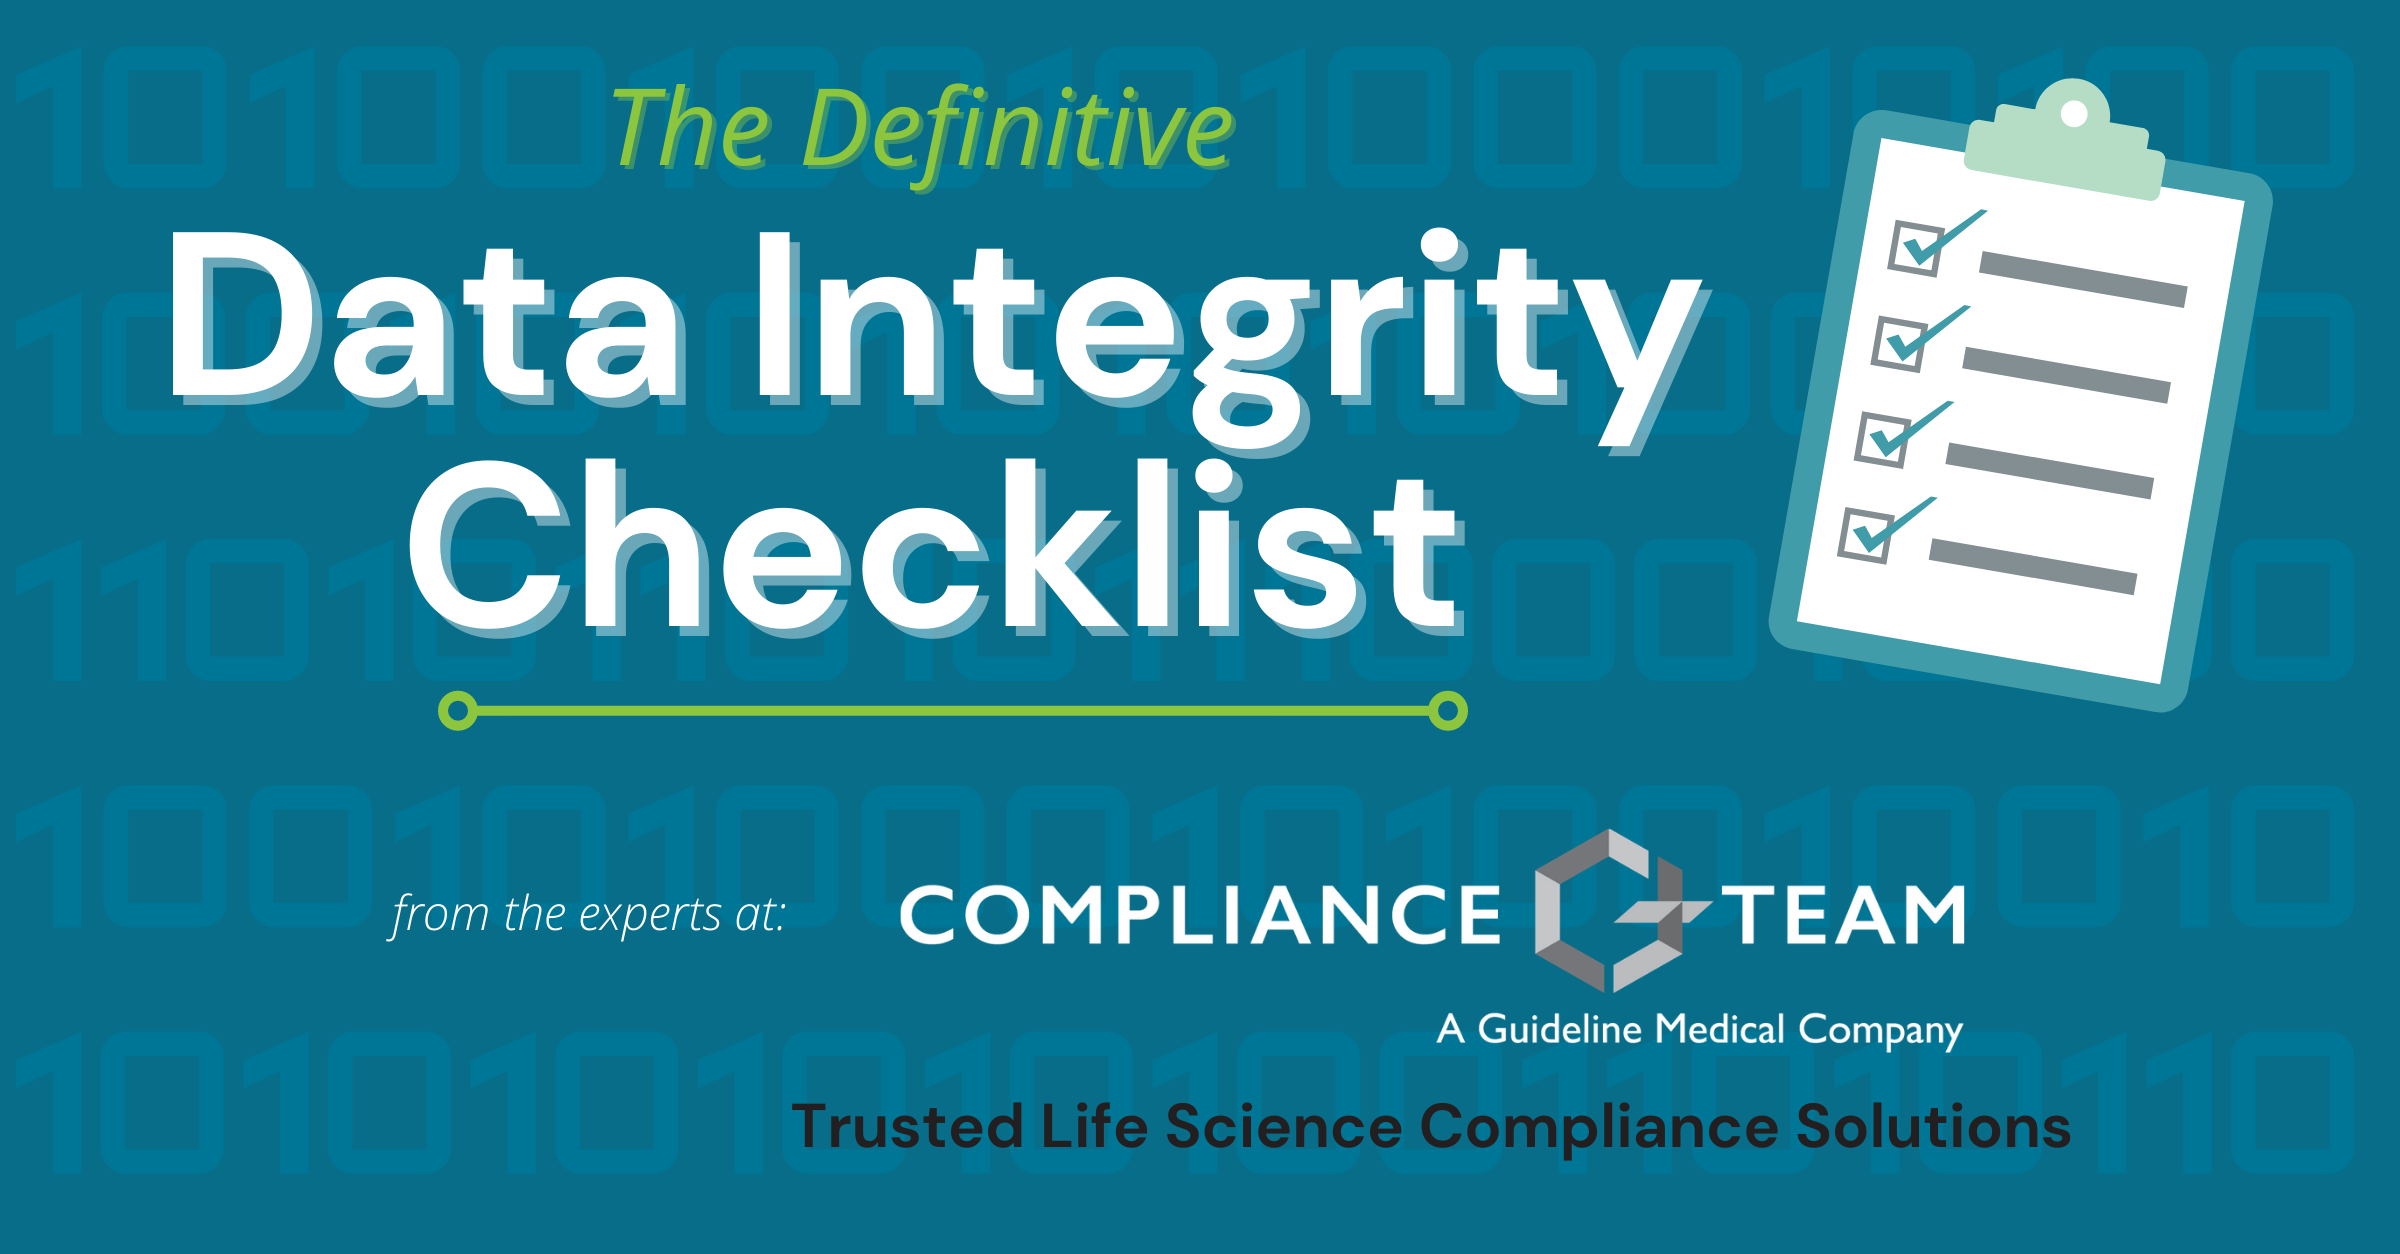 Data Integrity Checklist